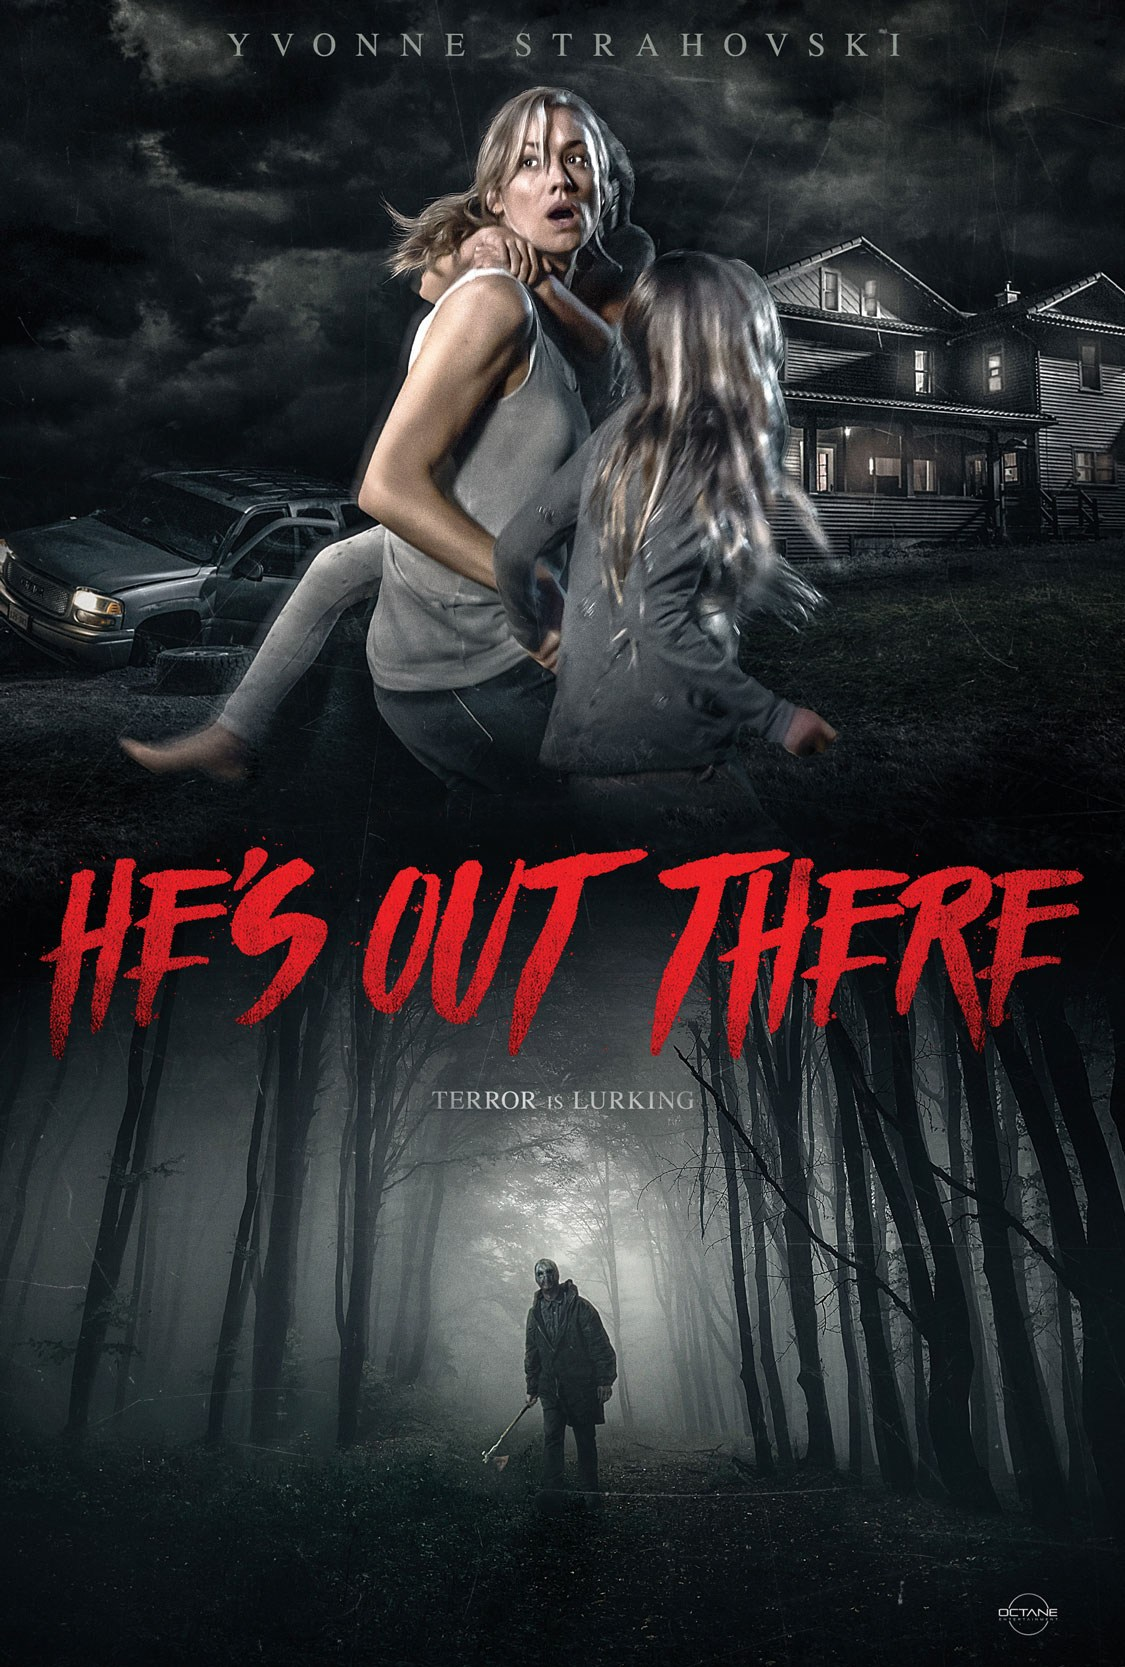 Hes-Out-There-movie-poster.jpg